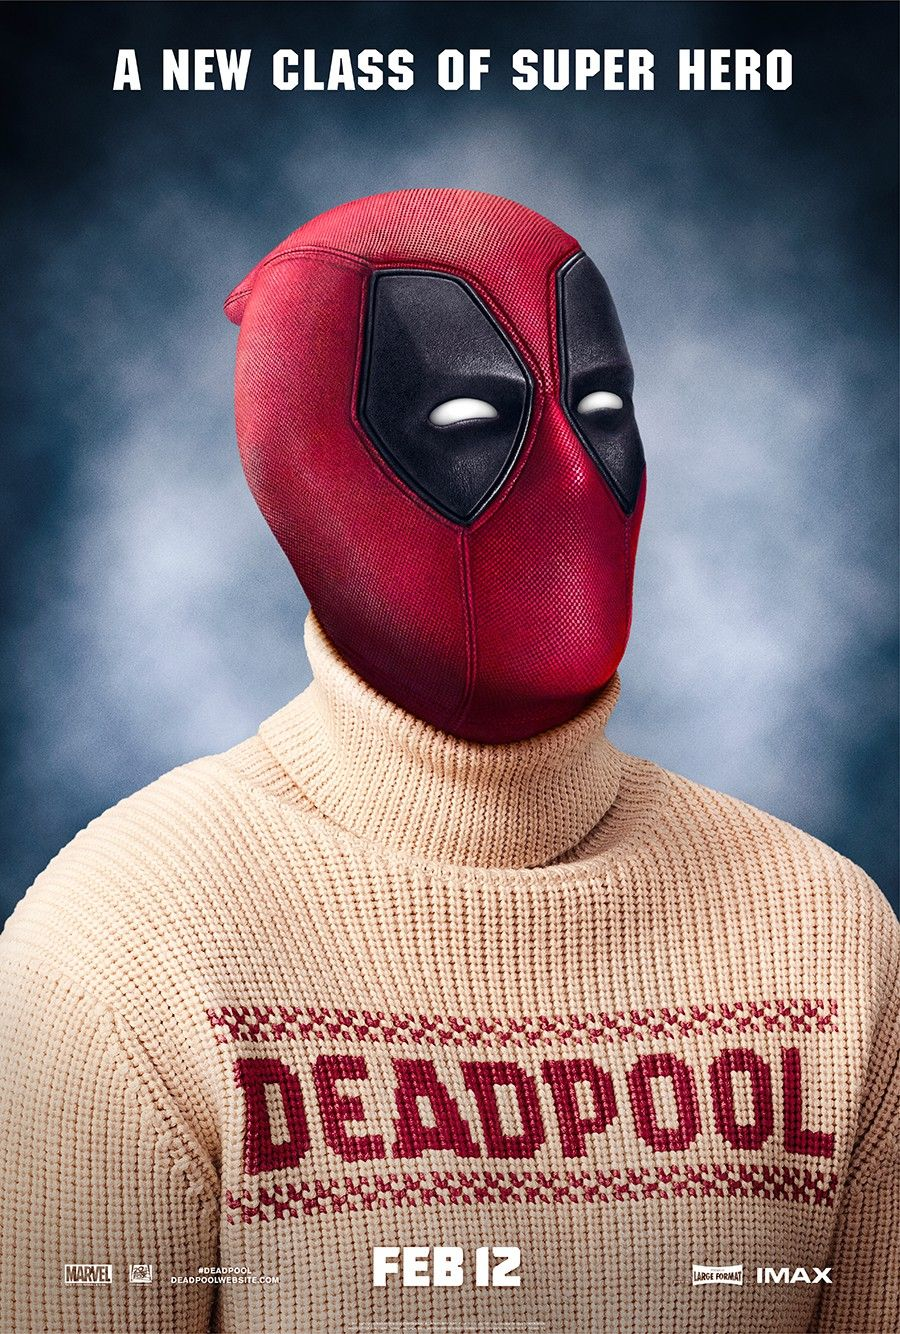 Deadpool Extra Large Movie Poster Image Internet Movie Poster Awards Gallery Deadpool Movie Poster Deadpool Poster Deadpool Art